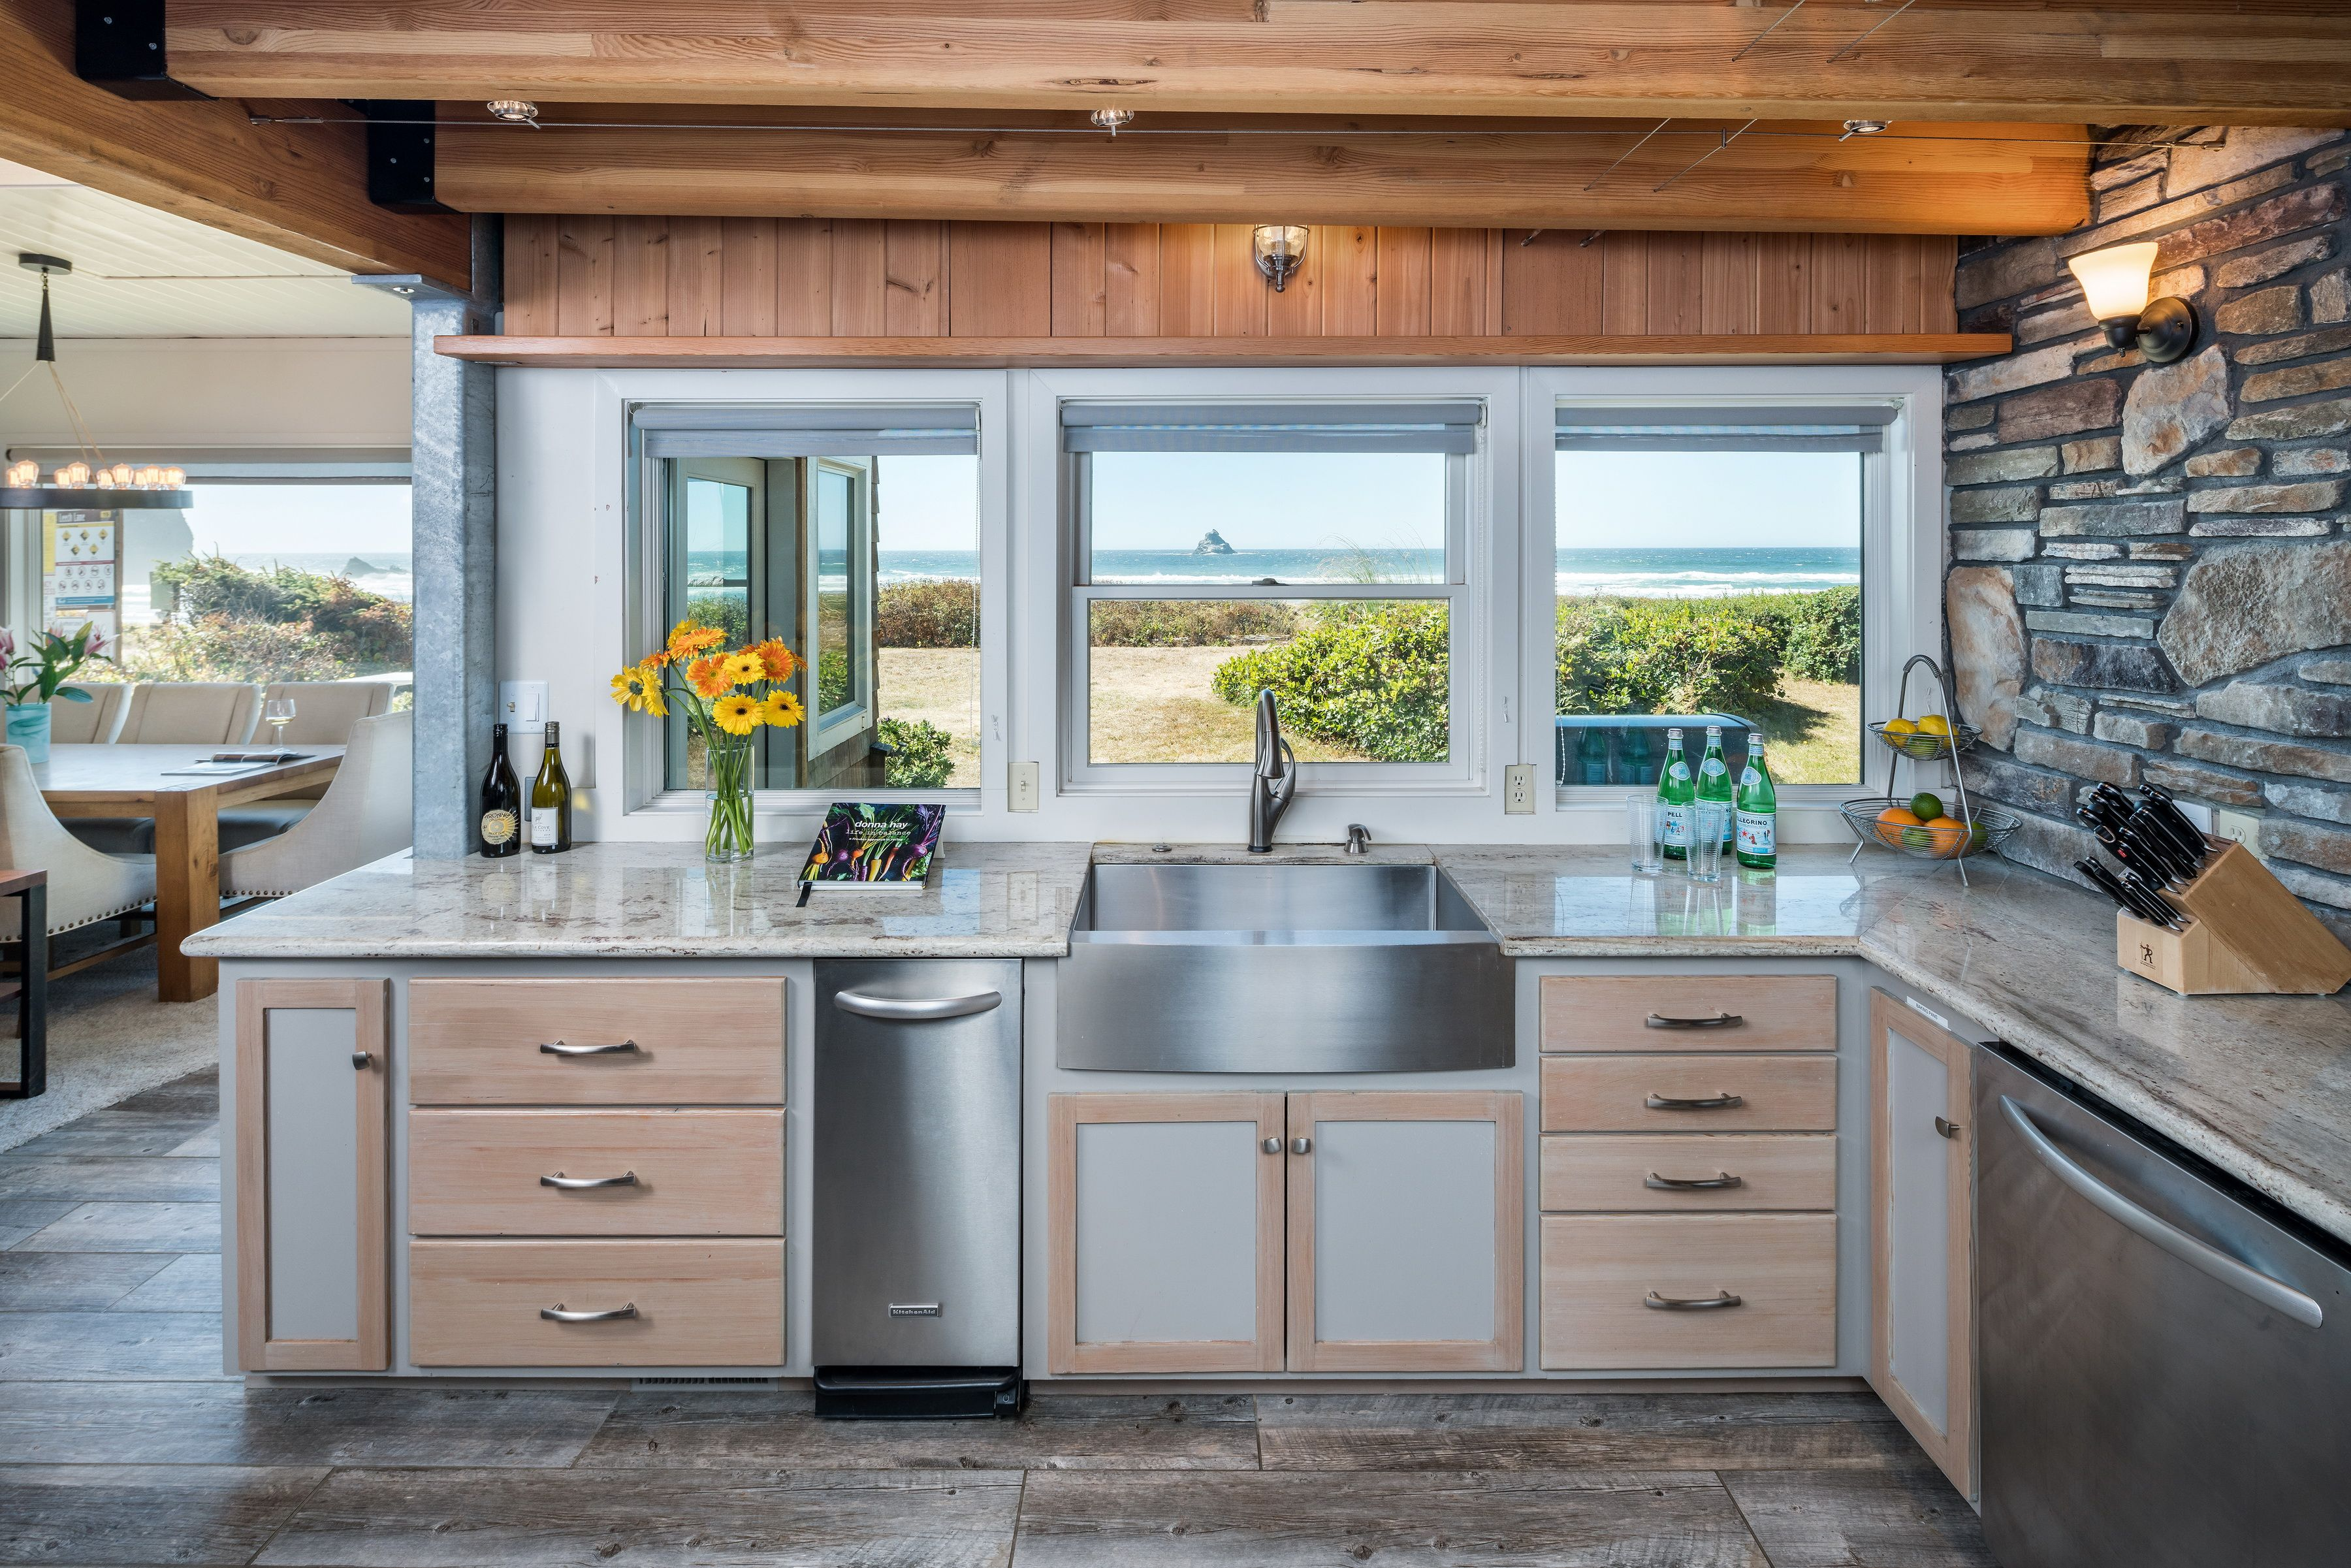 A beautiful kitchen overlooking the Pacific Ocean near